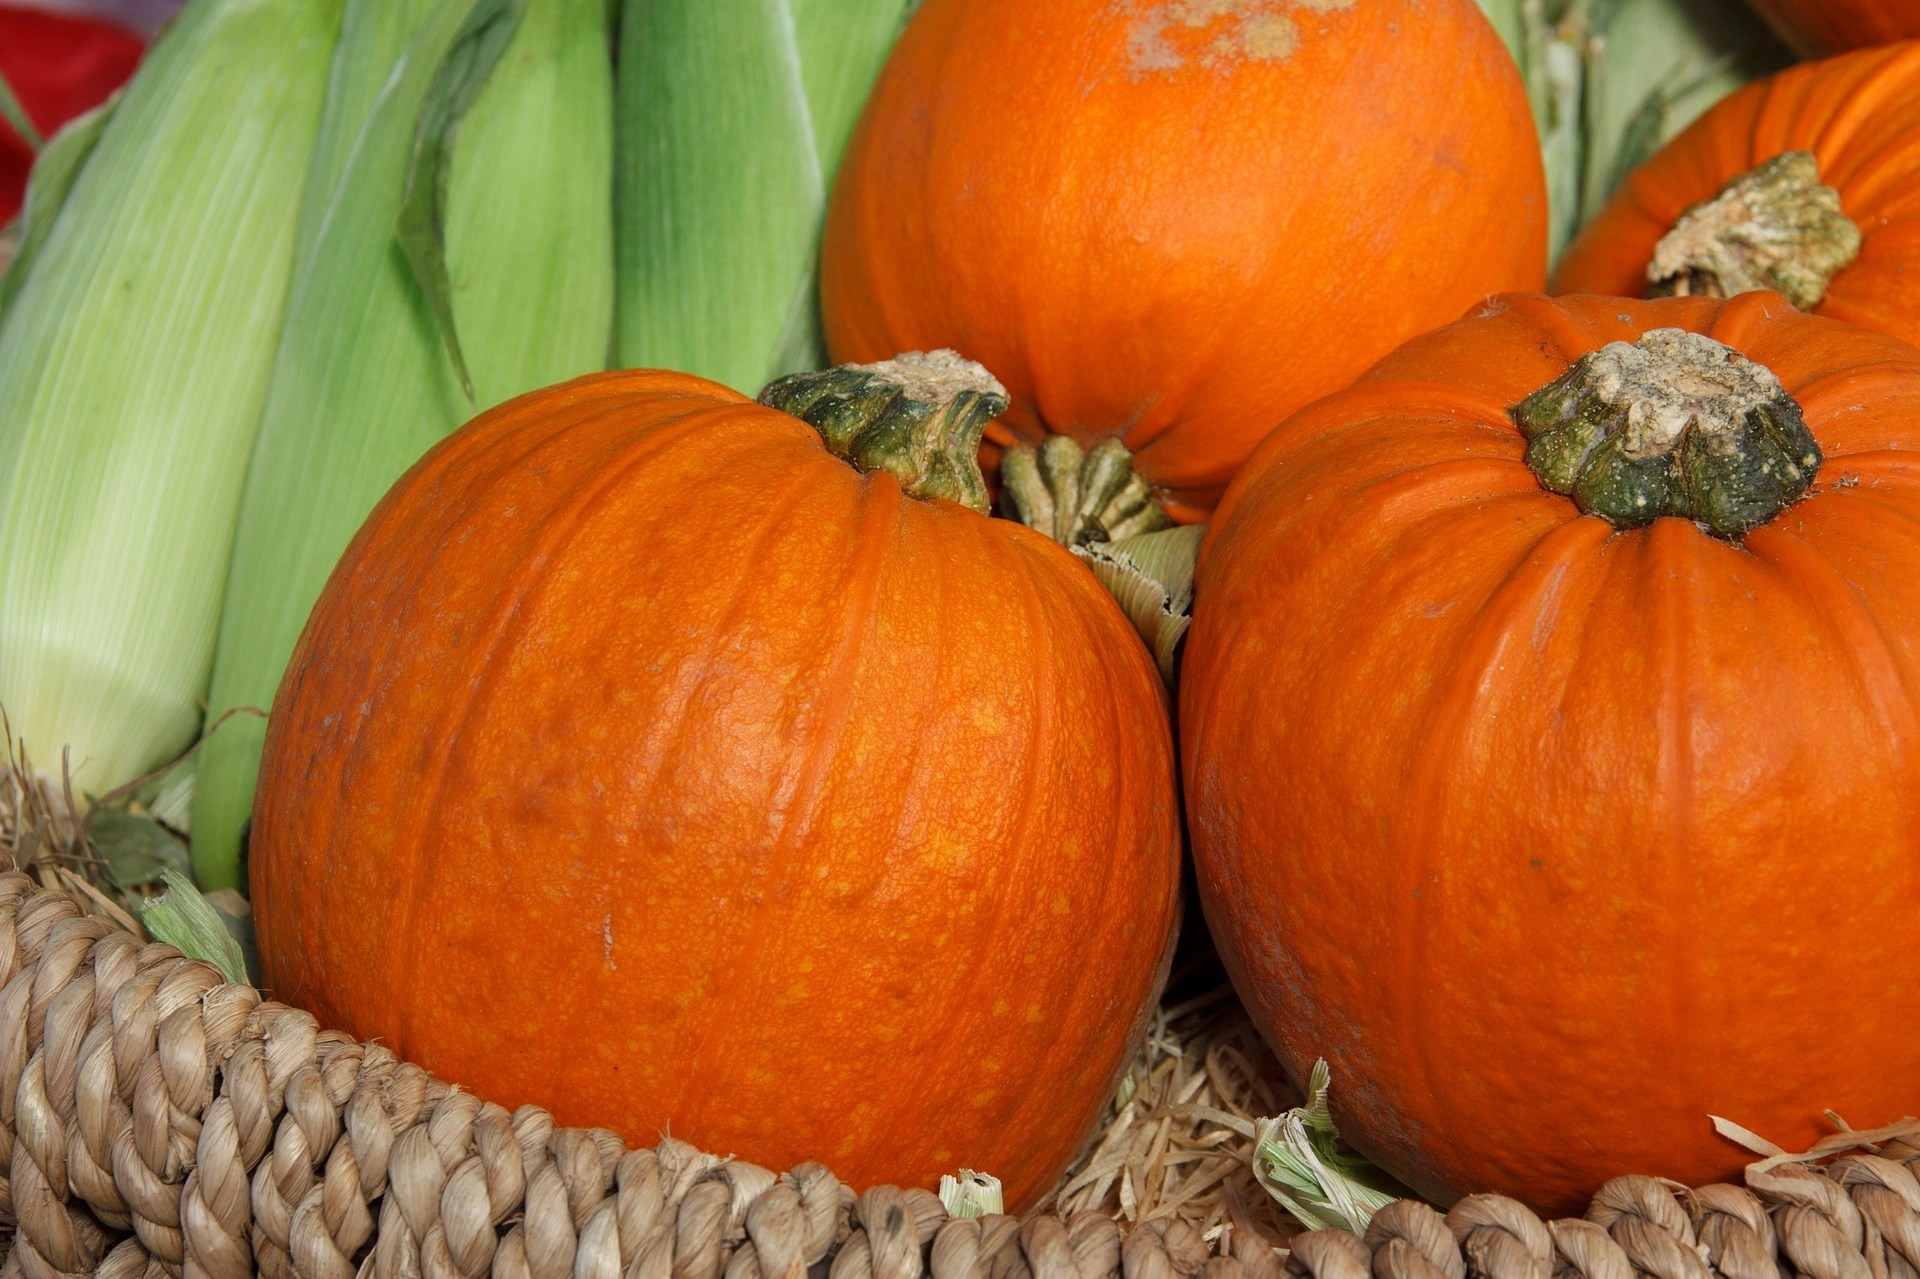 Image of pumpkins for the pumpkin patch parable